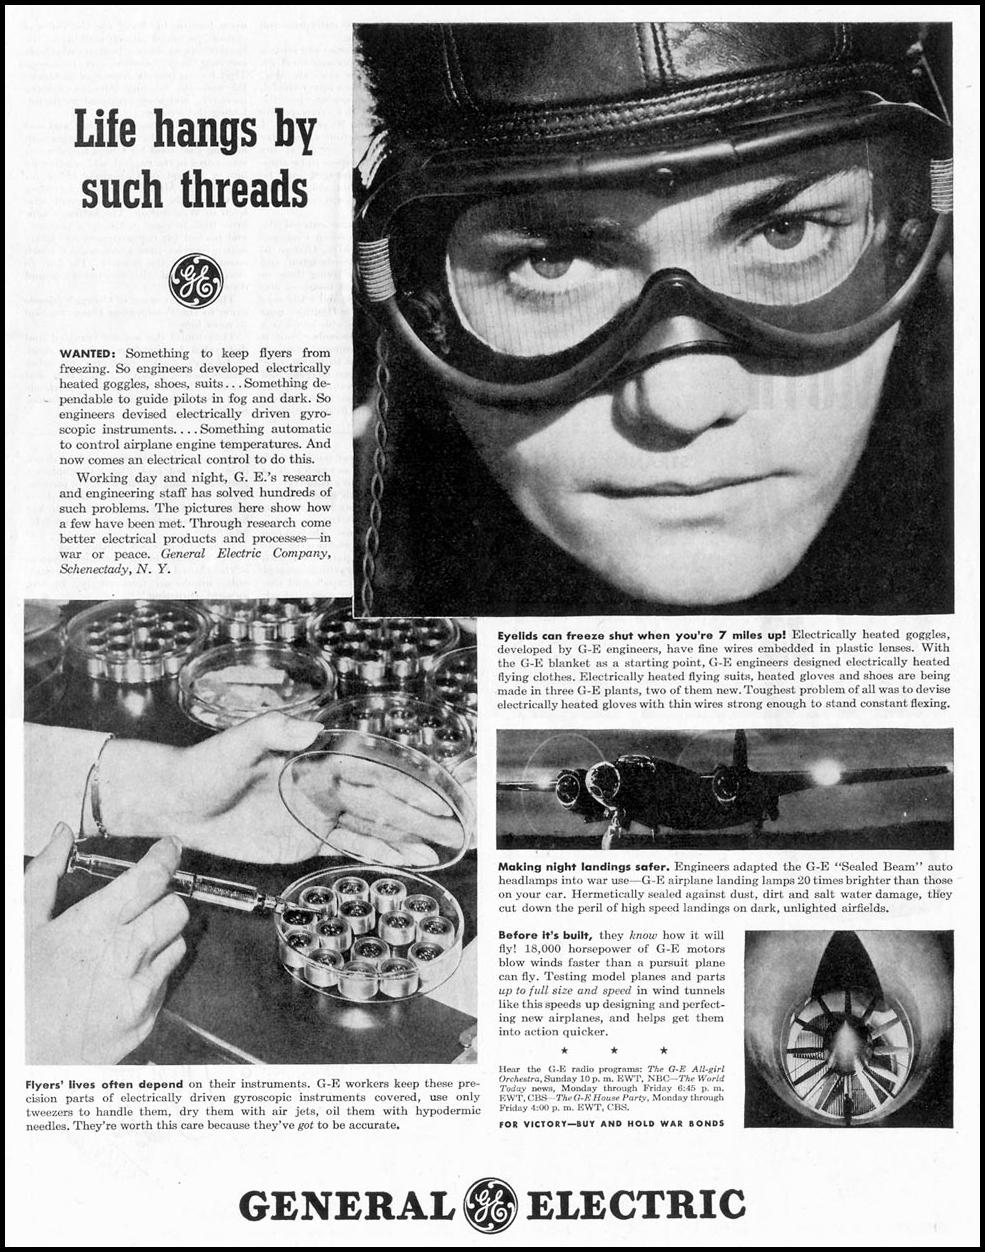 GENERAL ELECTRIC WAR PRODUCTION SATURDAY EVENING POST 05/19/1945 p. 43